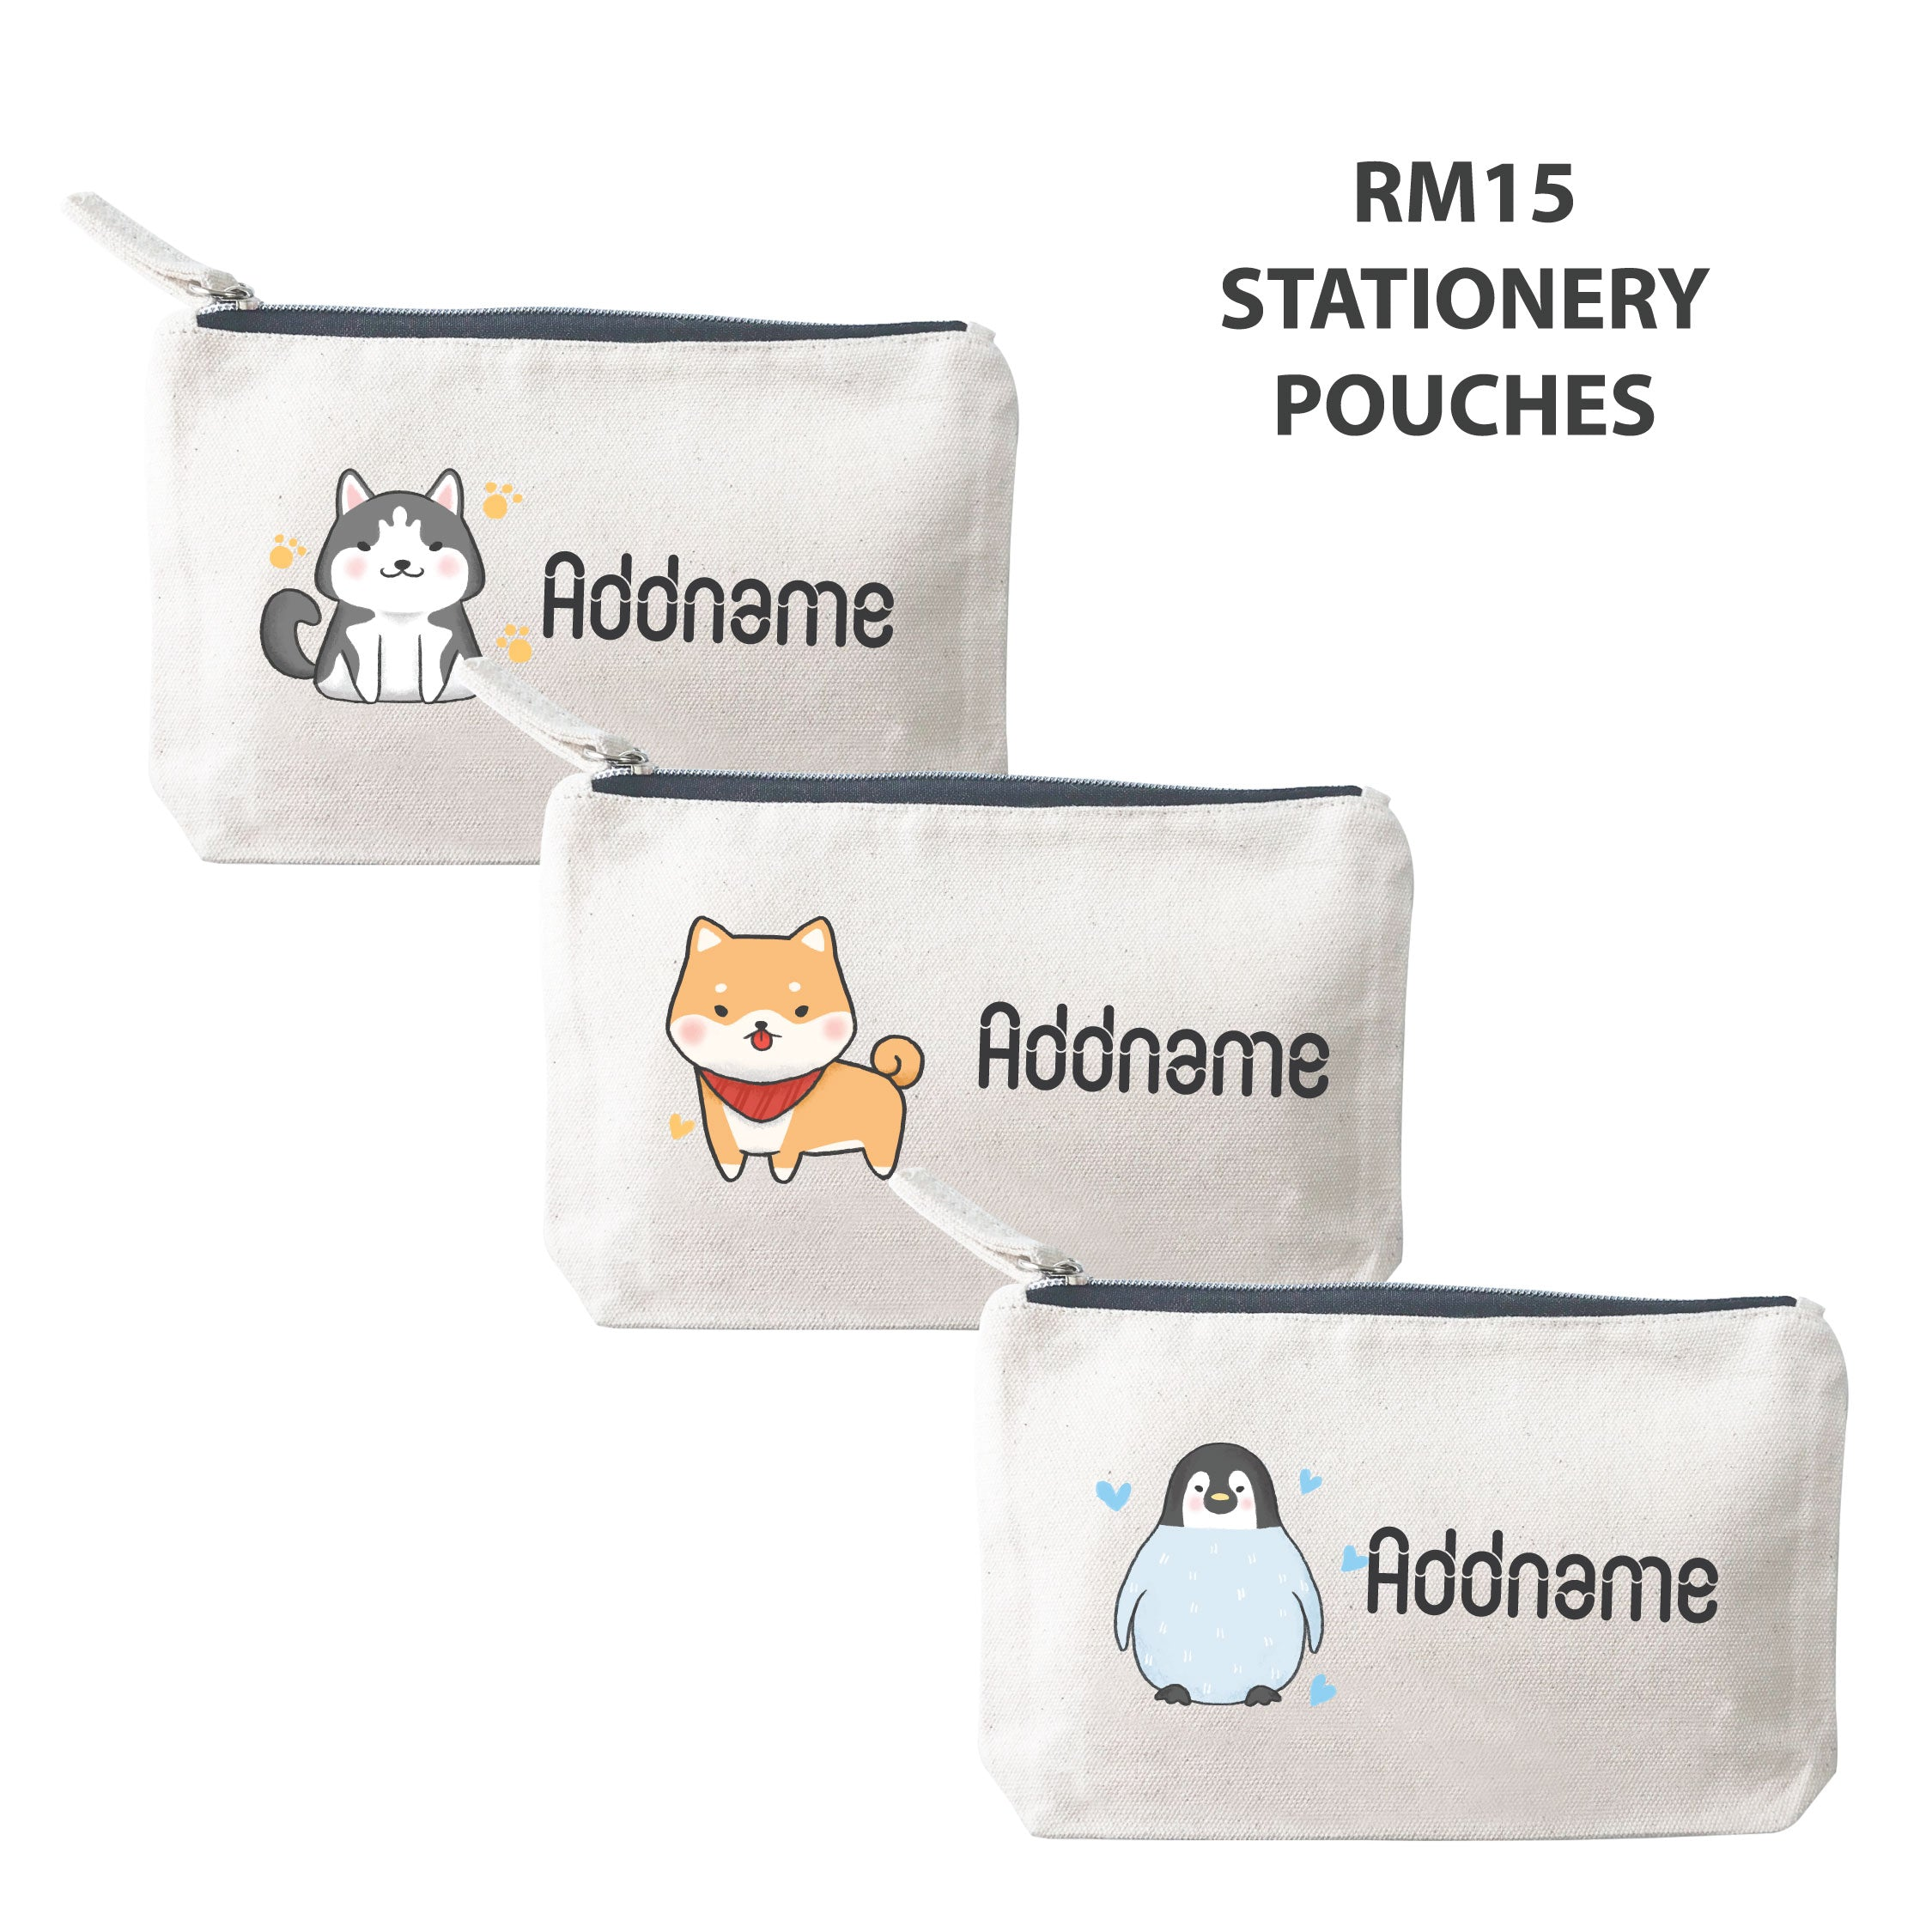 STATIONERY-POUCH1.jpg